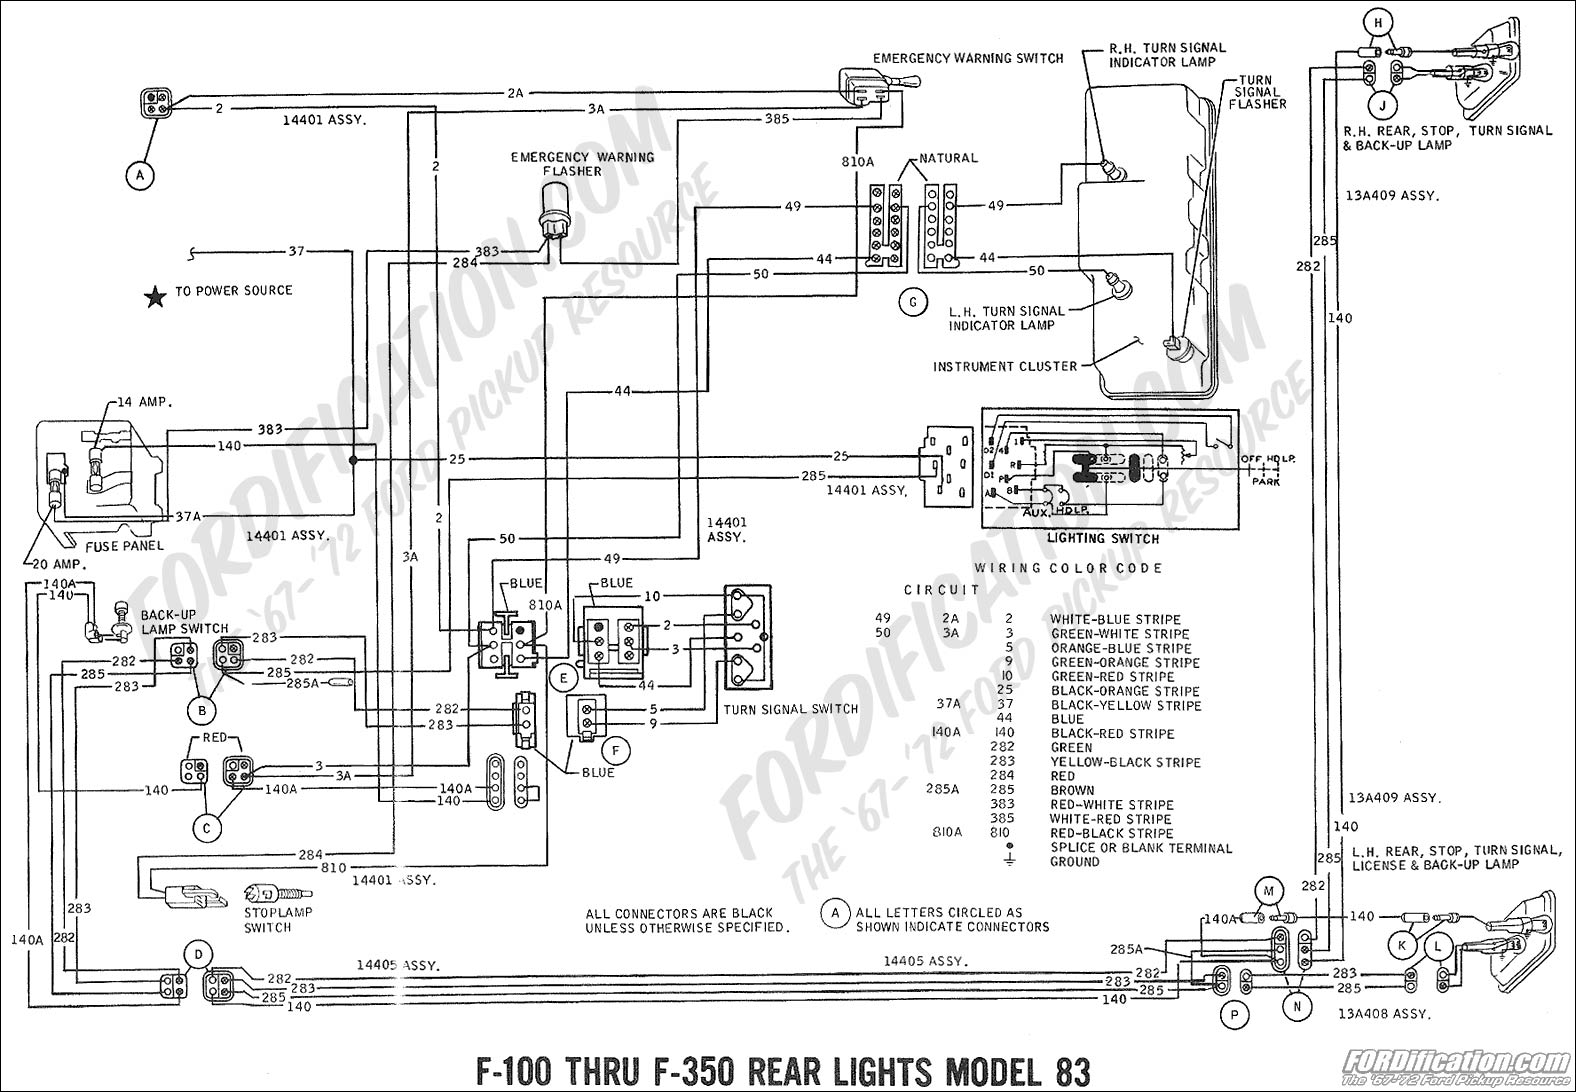 1969 mustang alternator wiring diagram   38 wiring diagram